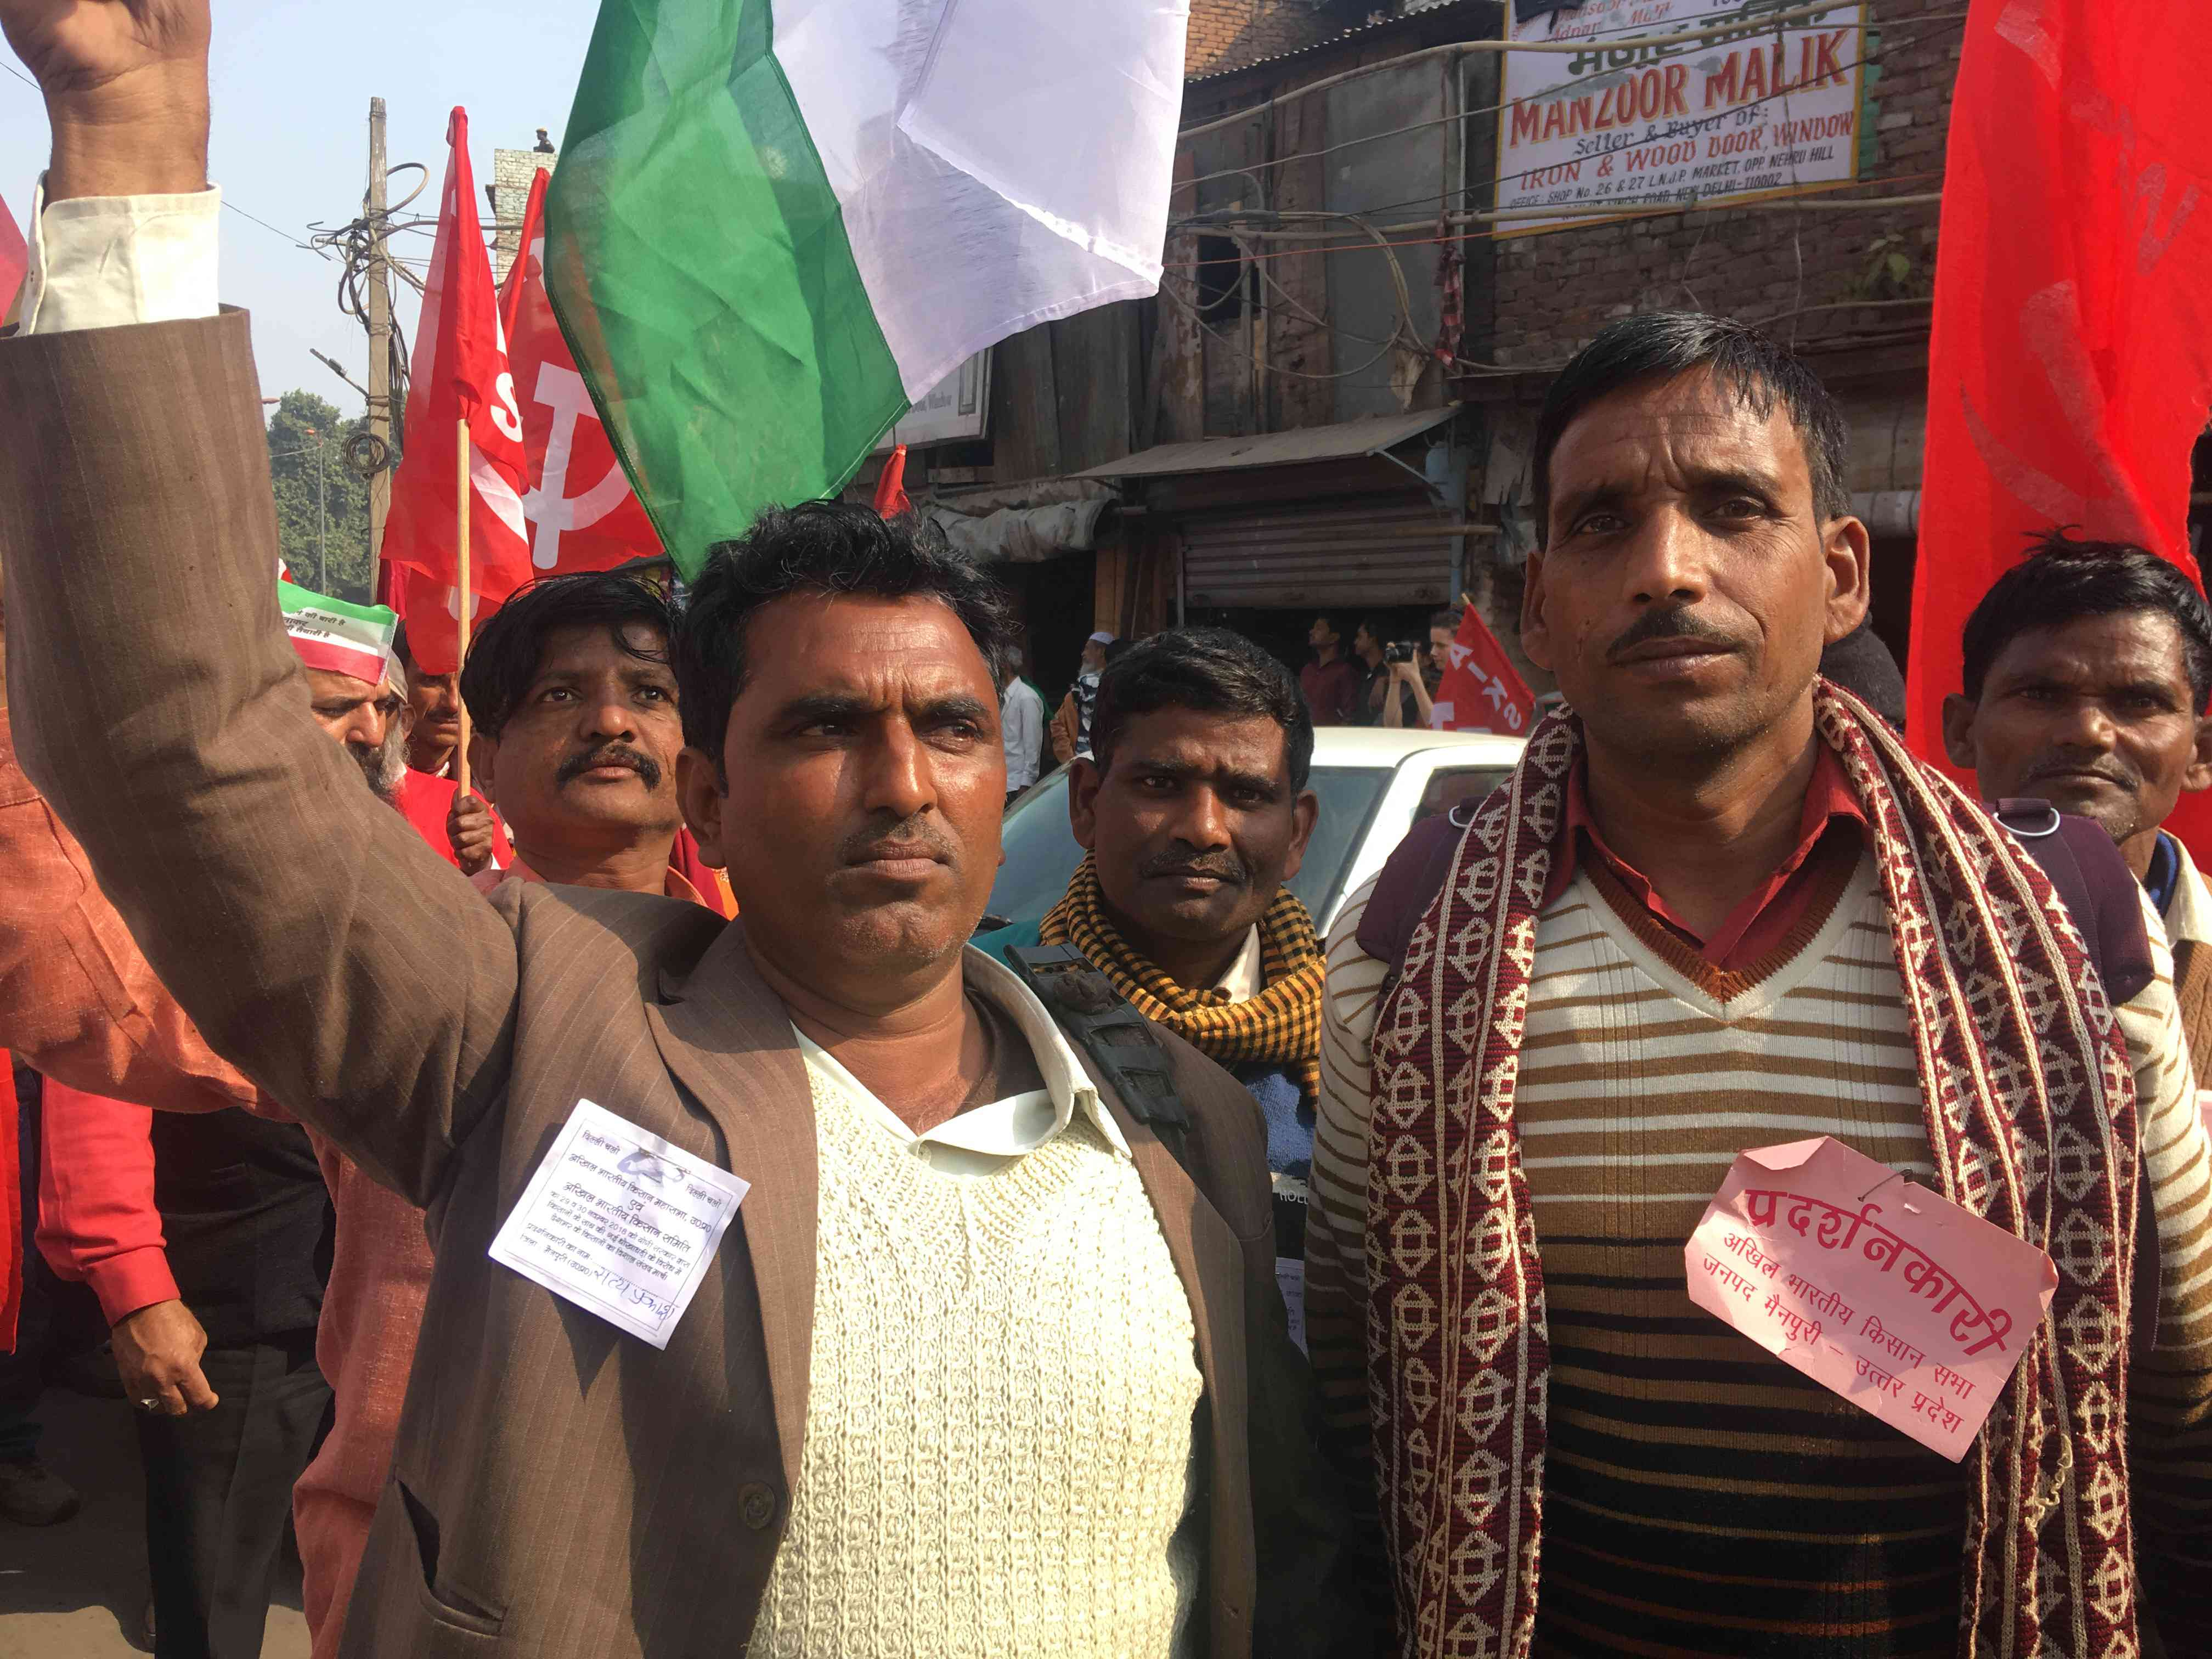 Satprakash Singh (left) and Jagbir Singh (right), from Mainpuri in Uttar Pradesh, demanded that their electricity bills be reduced.